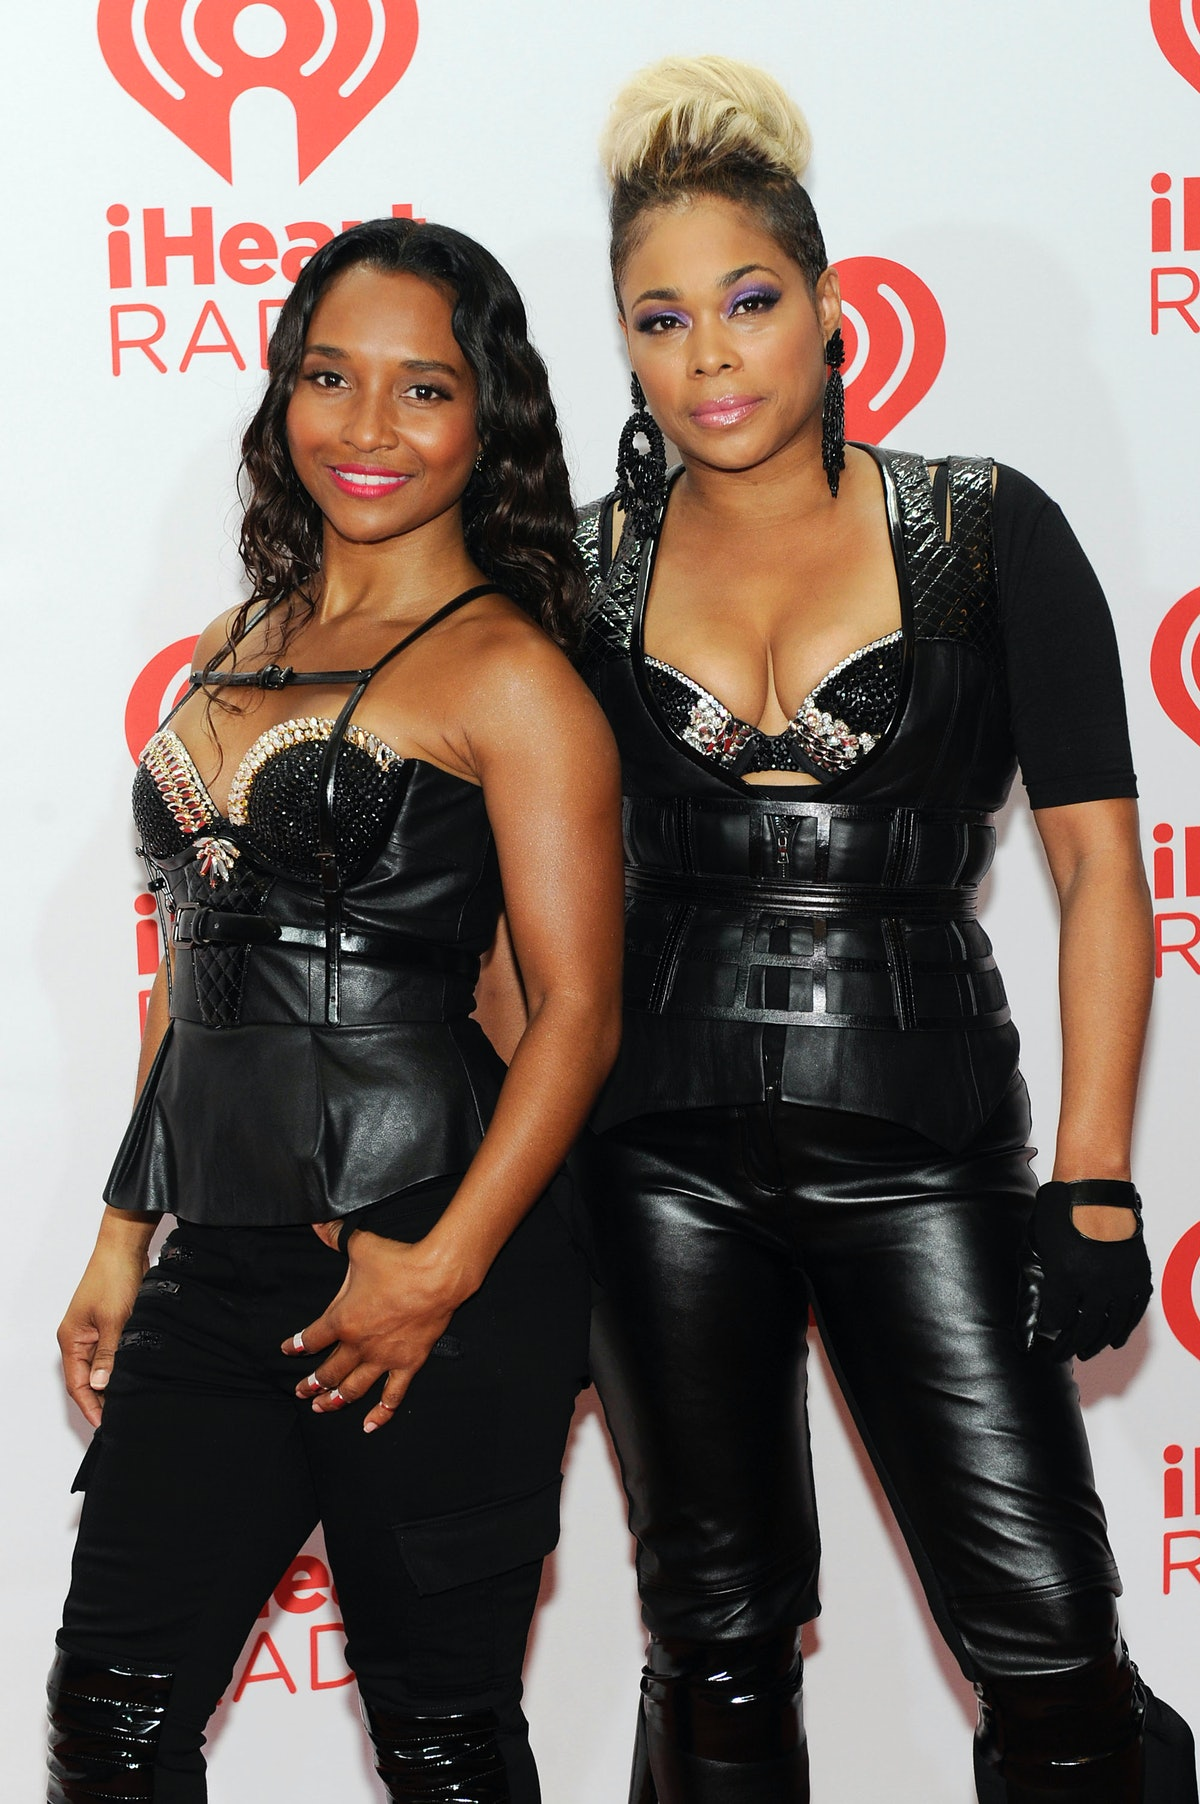 TLC's Chilli & T-Boz Turned Down Joining 'RHOA' For This Very Understandable Reason — VIDEO